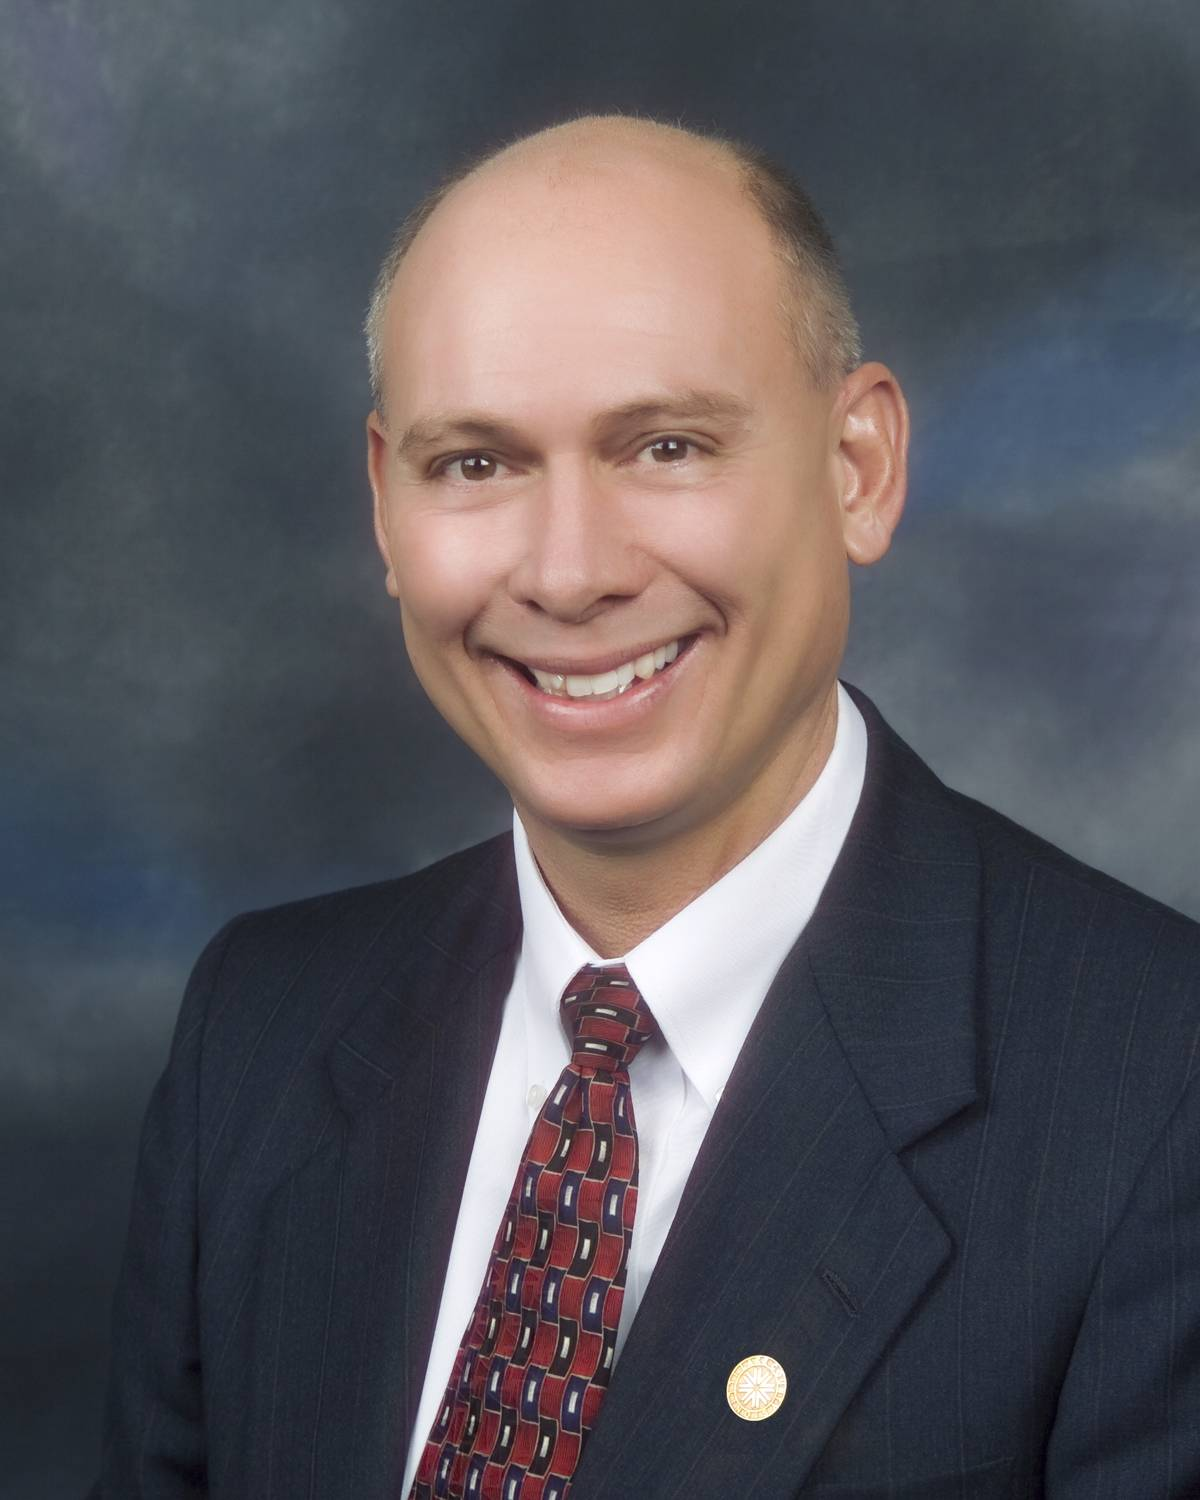 Brent Paxton, running for Lake County board District 4